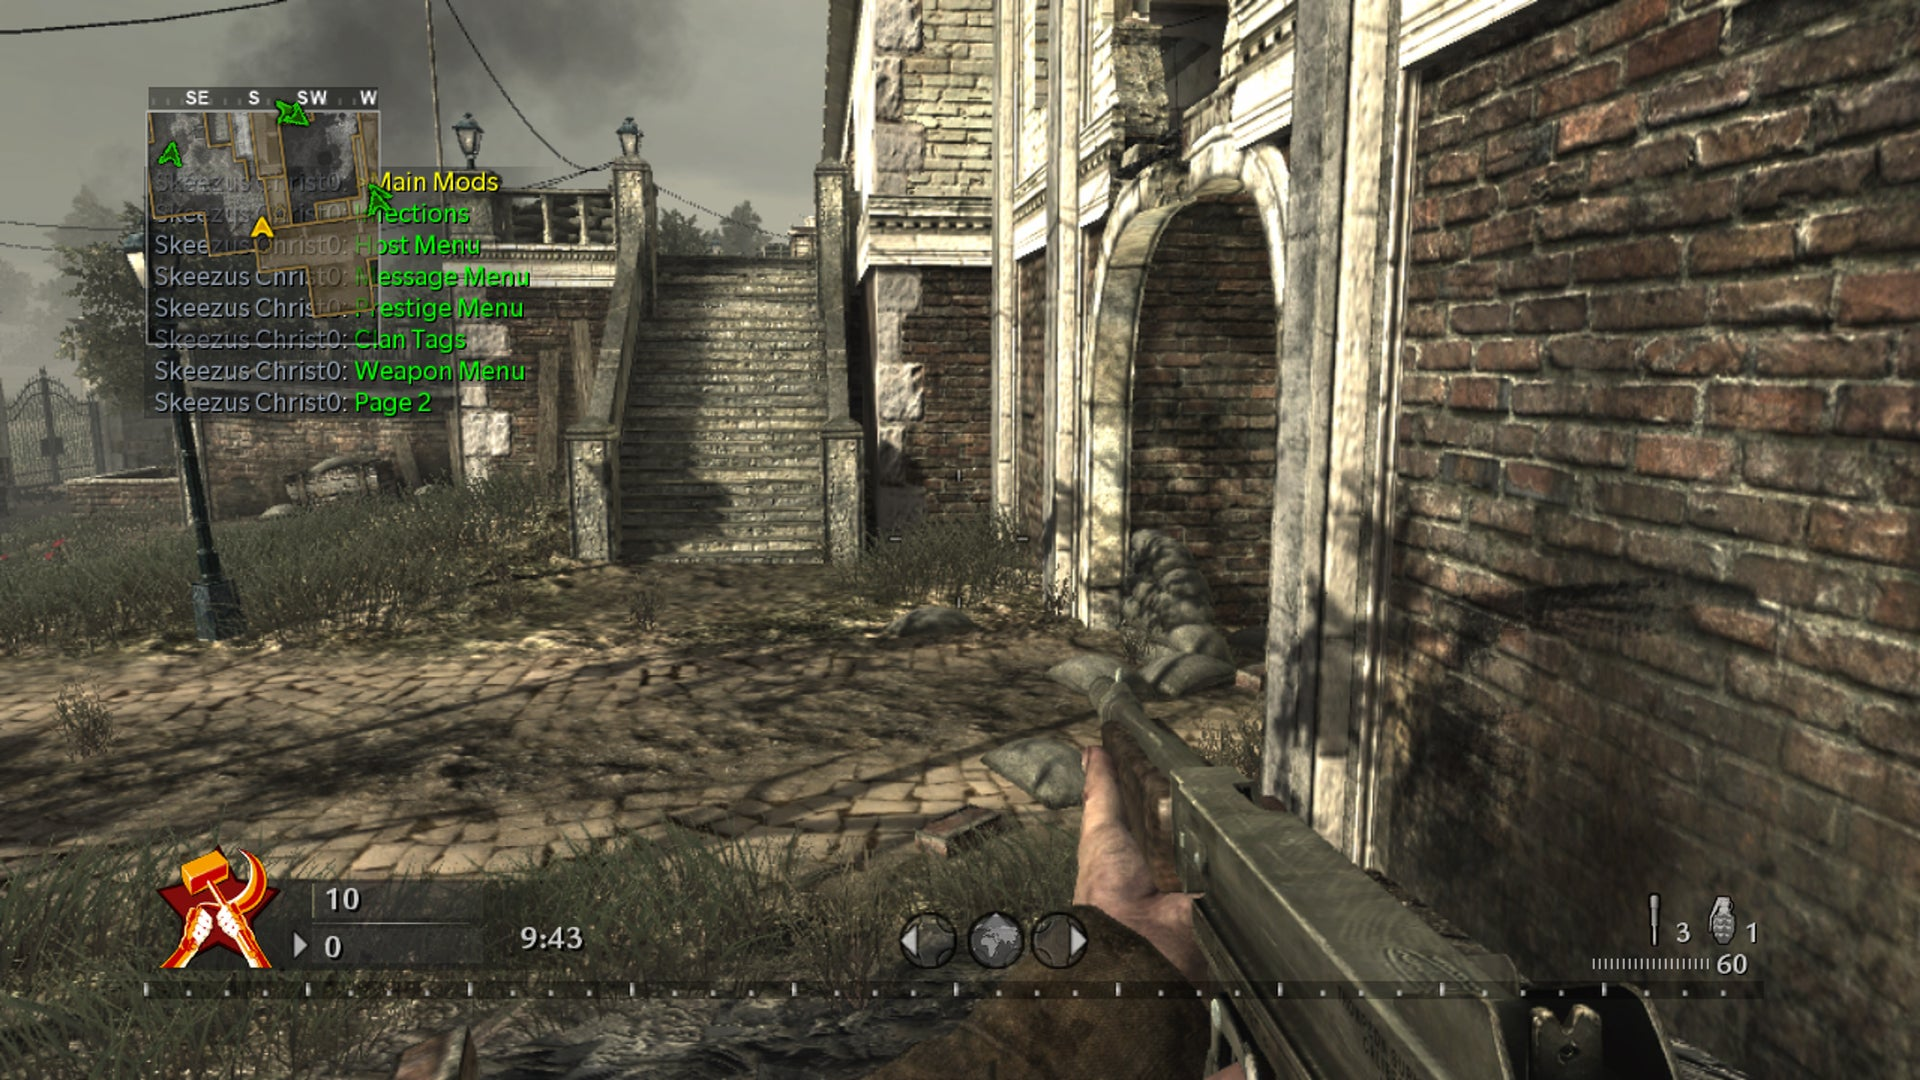 Hackers Aside, Call Of Duty: World At War Is Still Gruesome ...